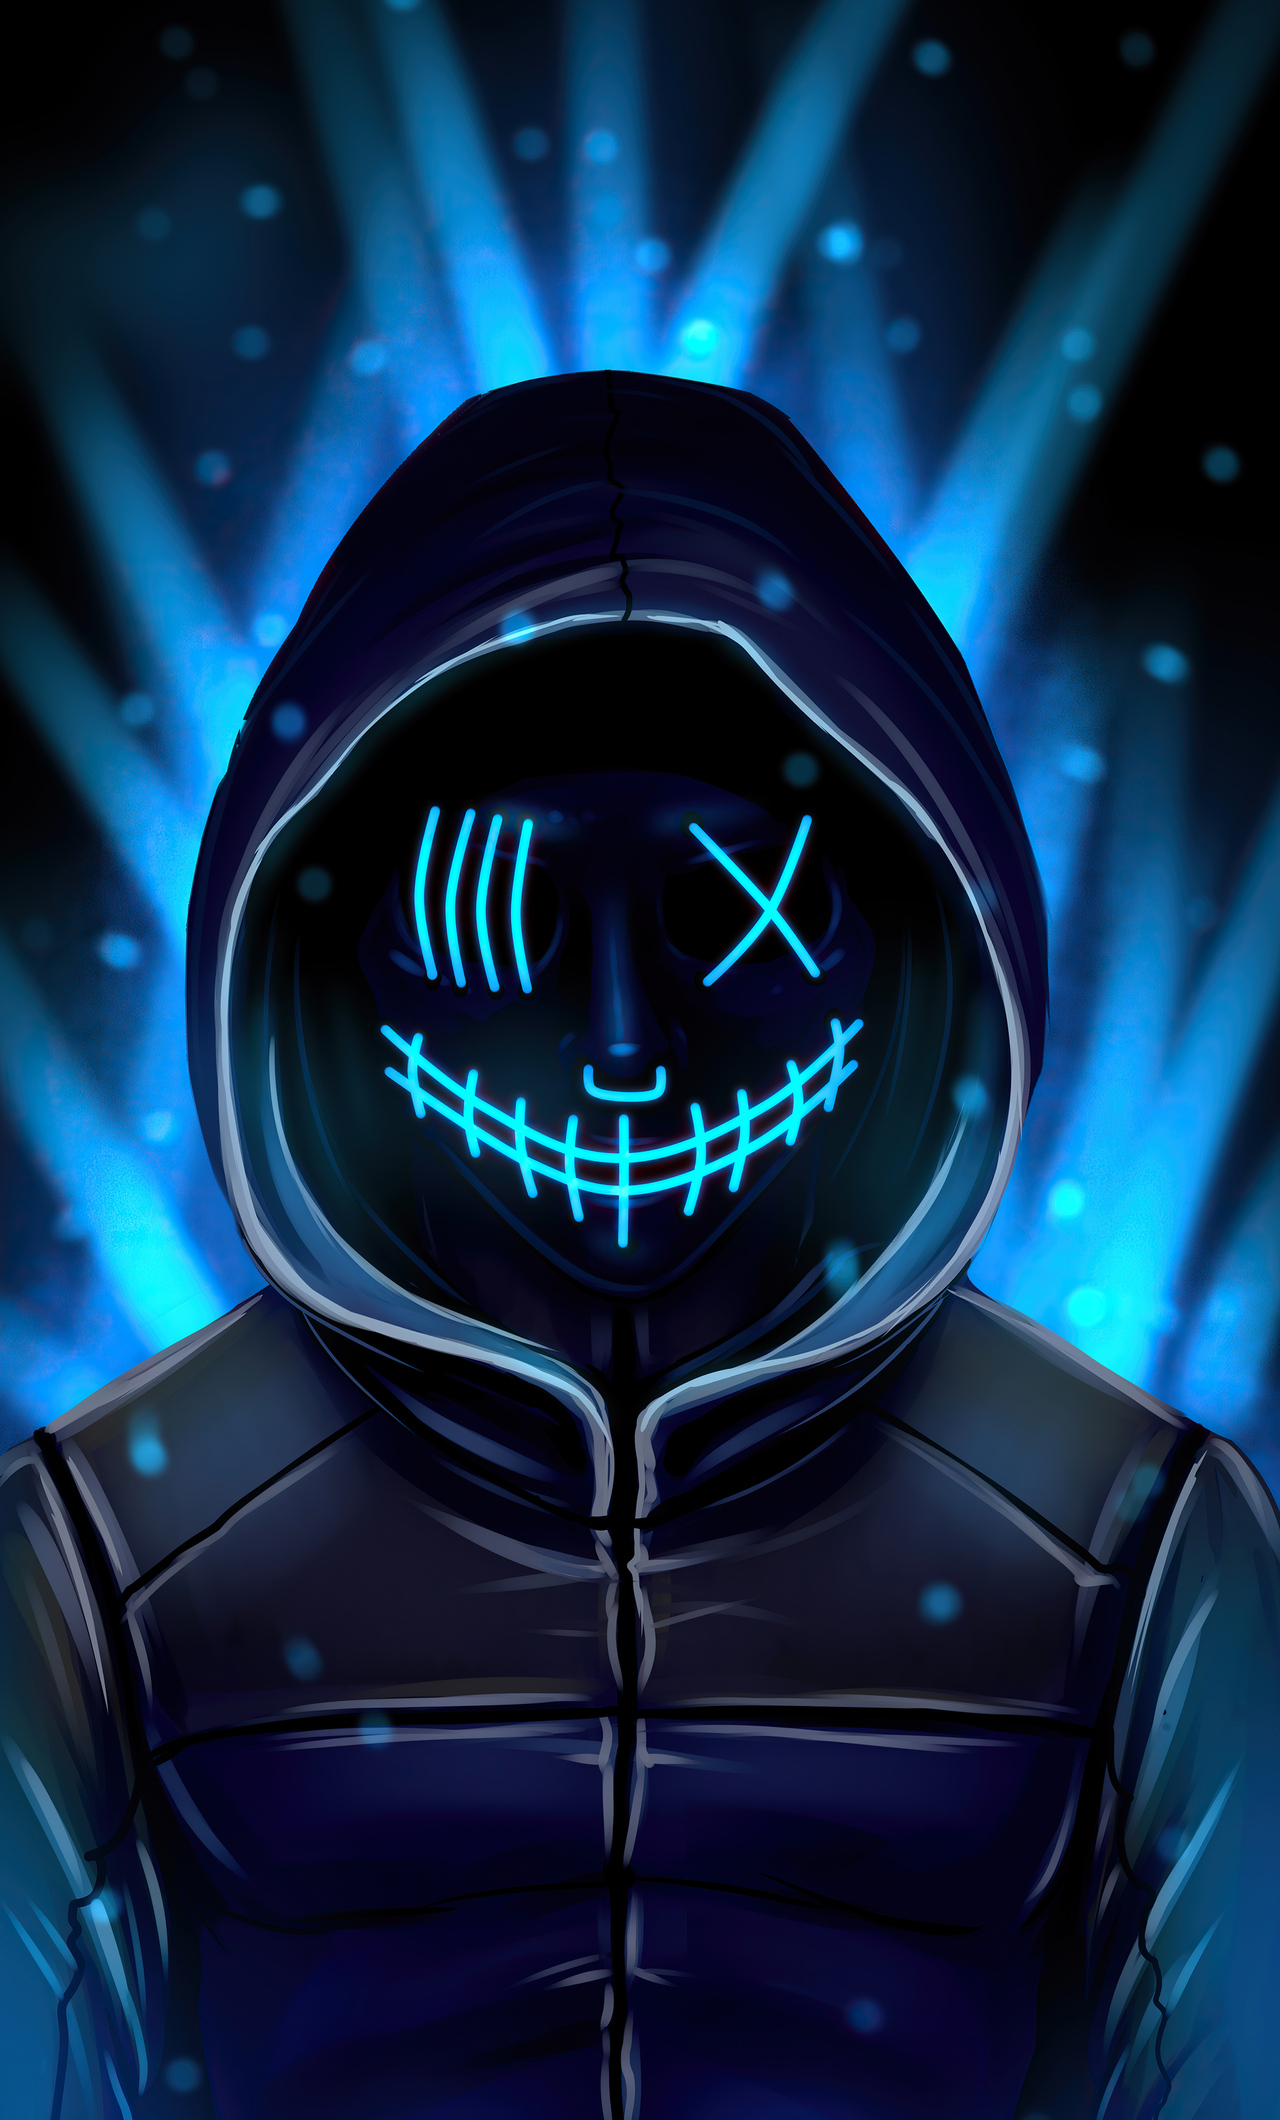 1280x2120 Neon Mask 4k Iphone 6 Hd 4k Wallpapers Images Backgrounds Photos And Pictures